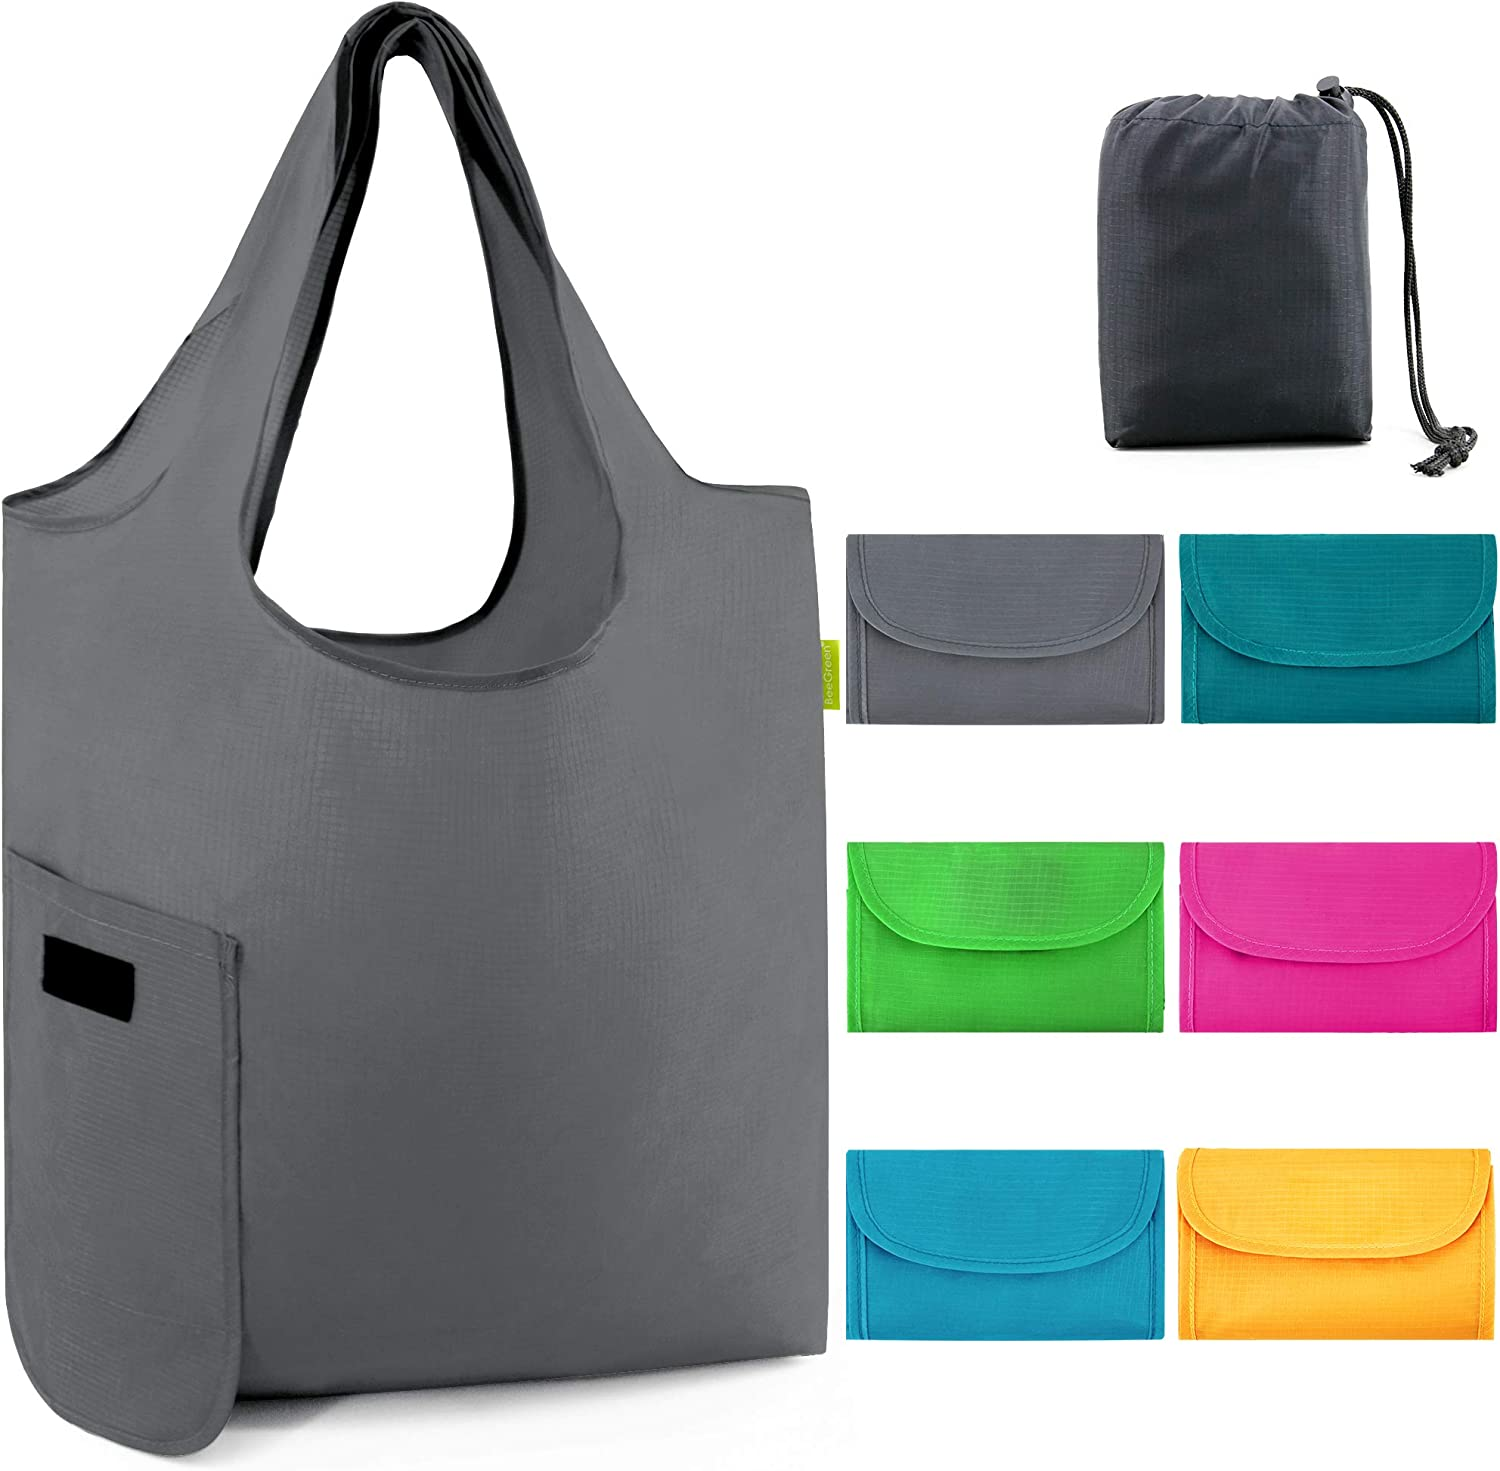 Grocery-Bags-Reusable-Shopping-Bag Foldable With Magic Tape 6 Pack Large 50LBS Easy Fold Tote Bags For Groceries Ripstop Fabric Washable Durable Lightweight